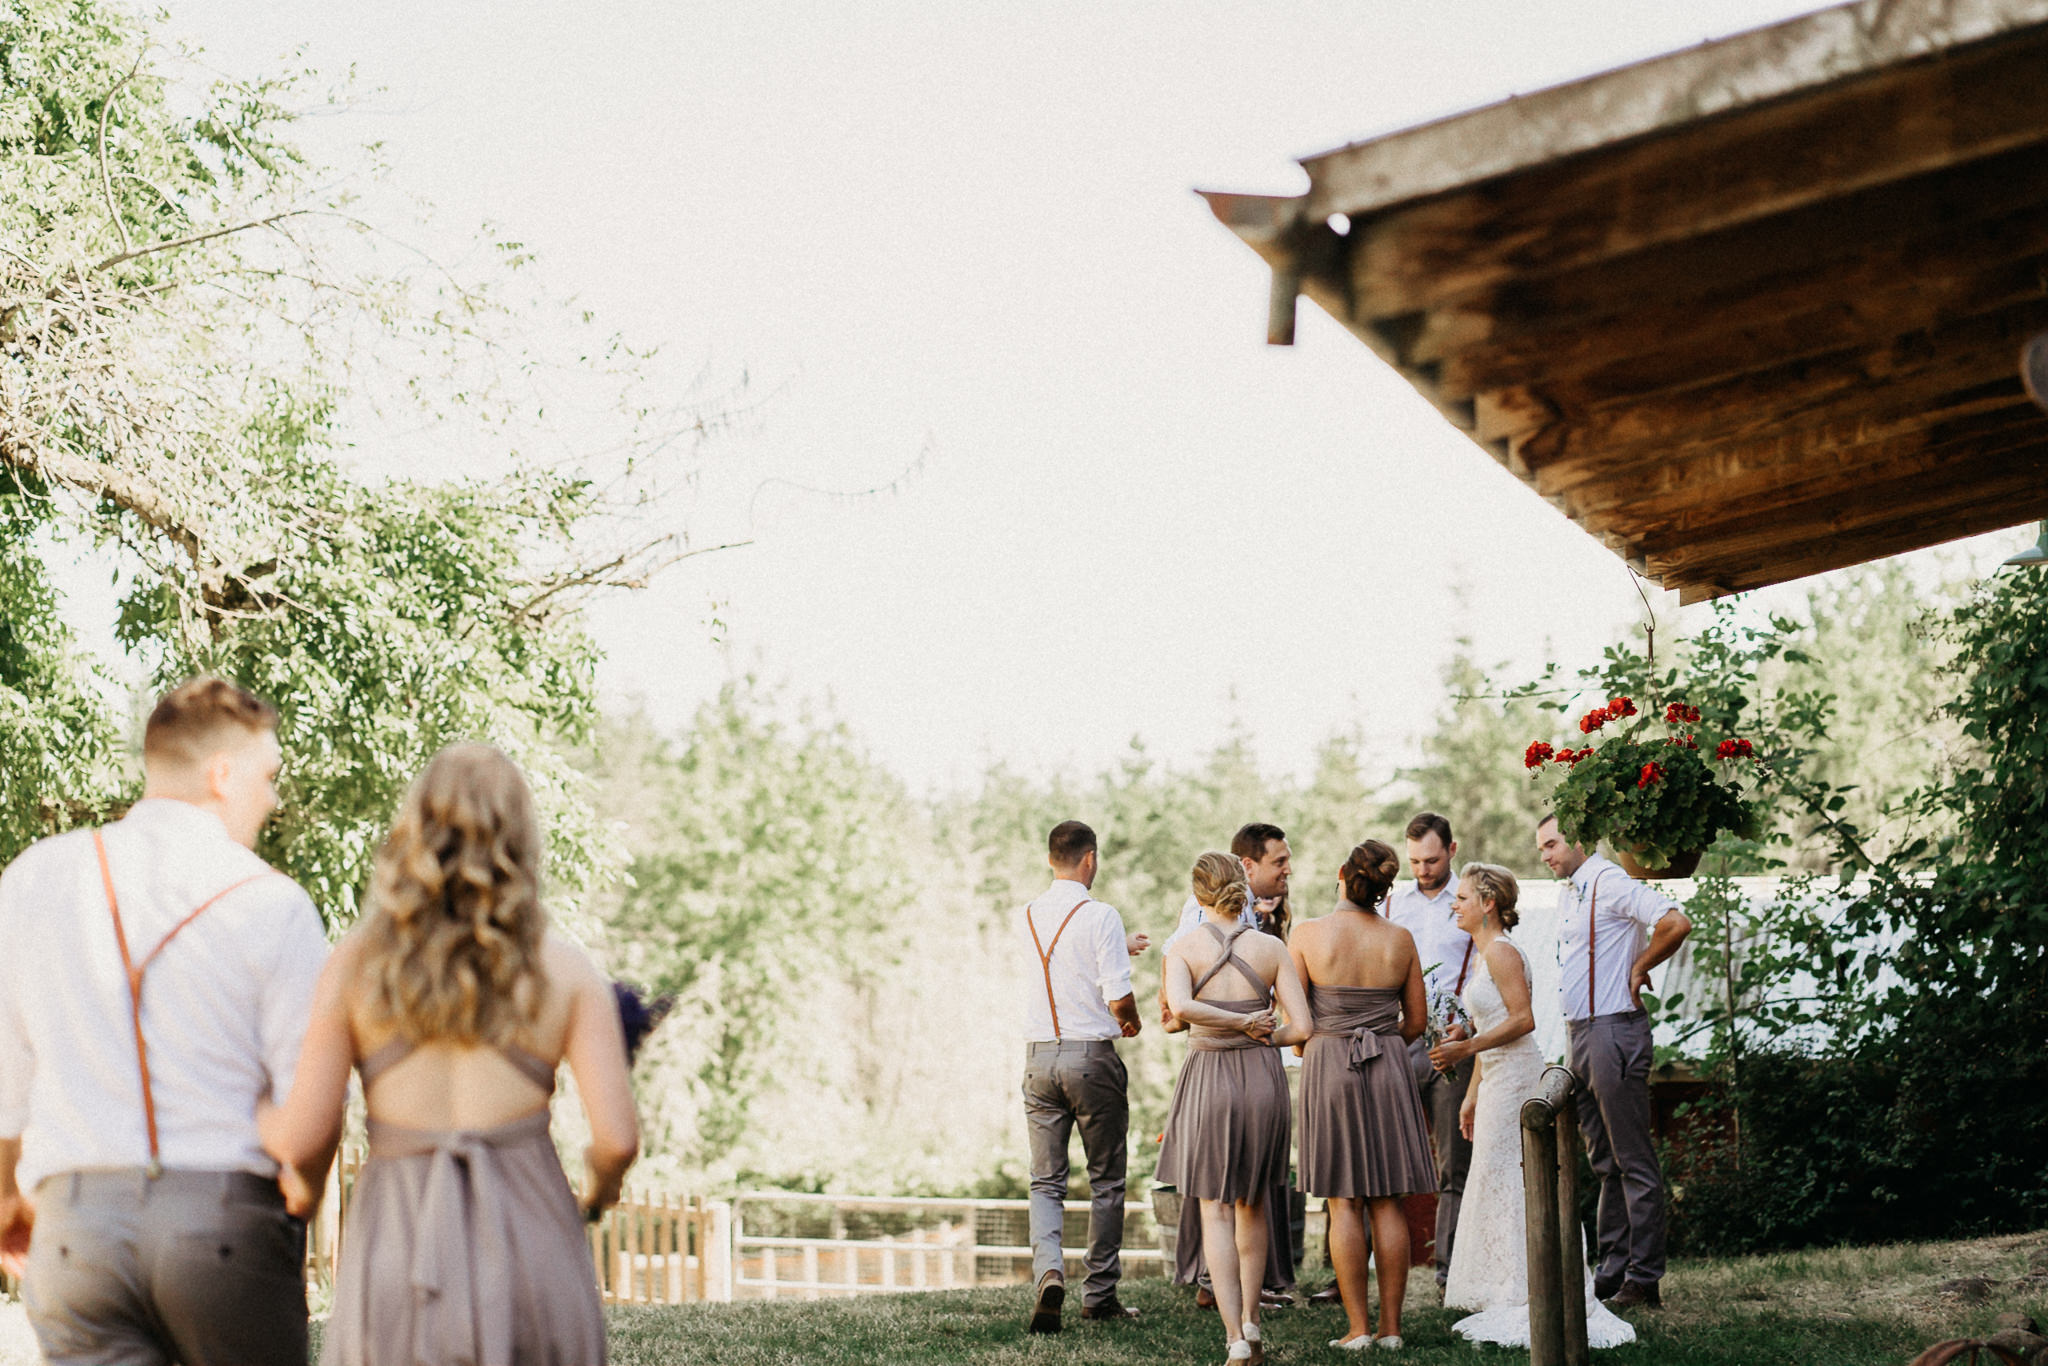 Summerhill-Farms-Portland-Wedding-Photographer-Backyard-Vineyard-52.jpg